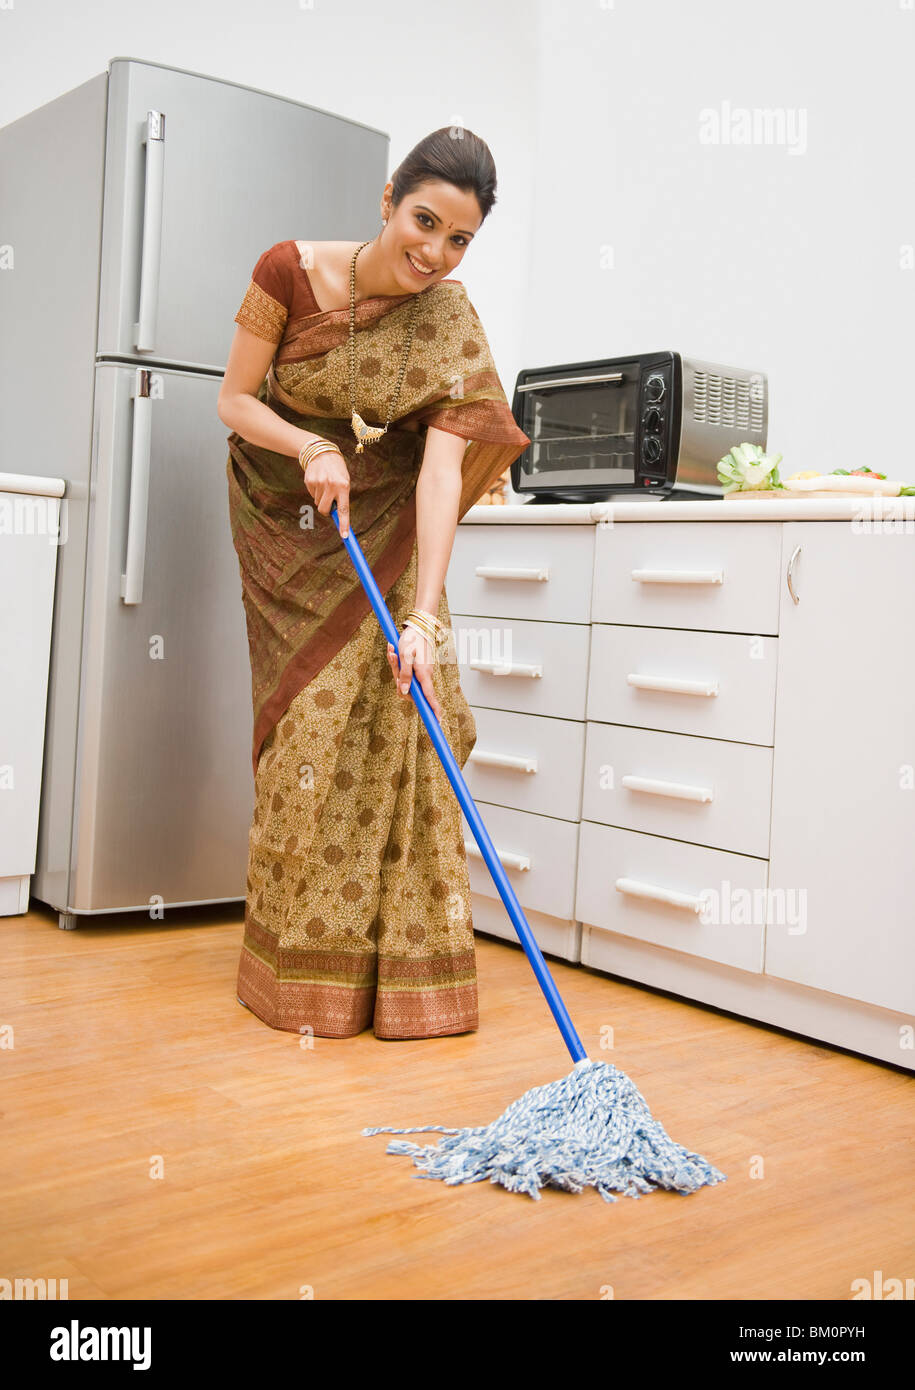 Mopping Kitchen Floor Woman Cleaning Floor With A Mop Stock Photo Royalty Free Image